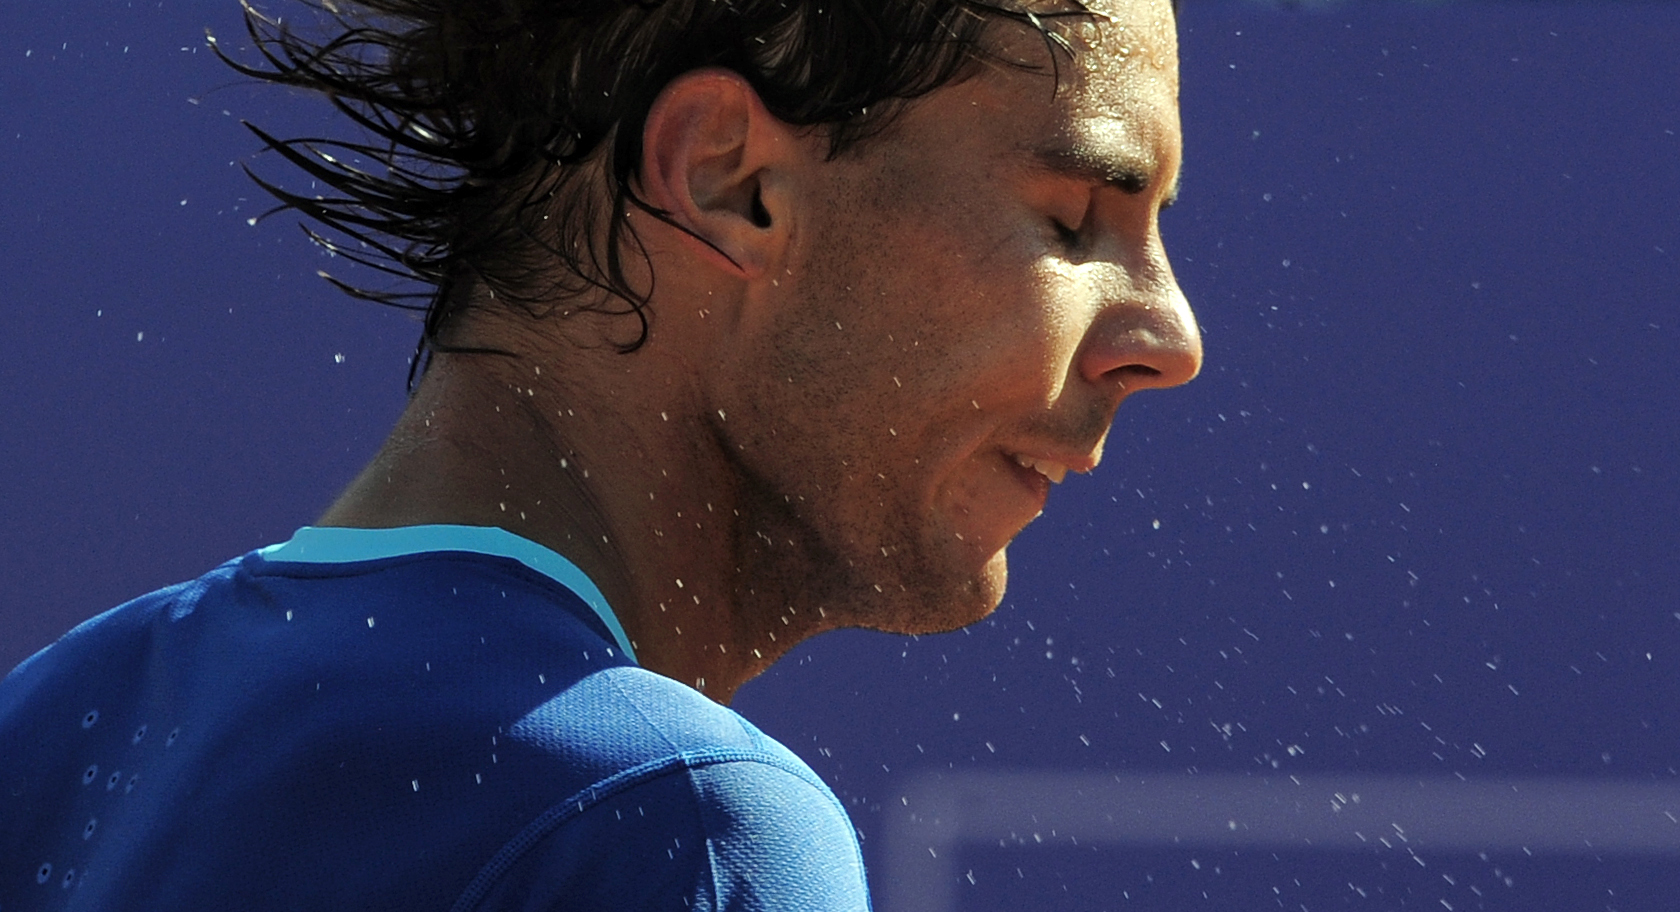 Rafael Nadal reacts after his victory over Albert Ramos during the Barcelona open tennis in Barcelona, Spain, Wednesday, April 23, 2014